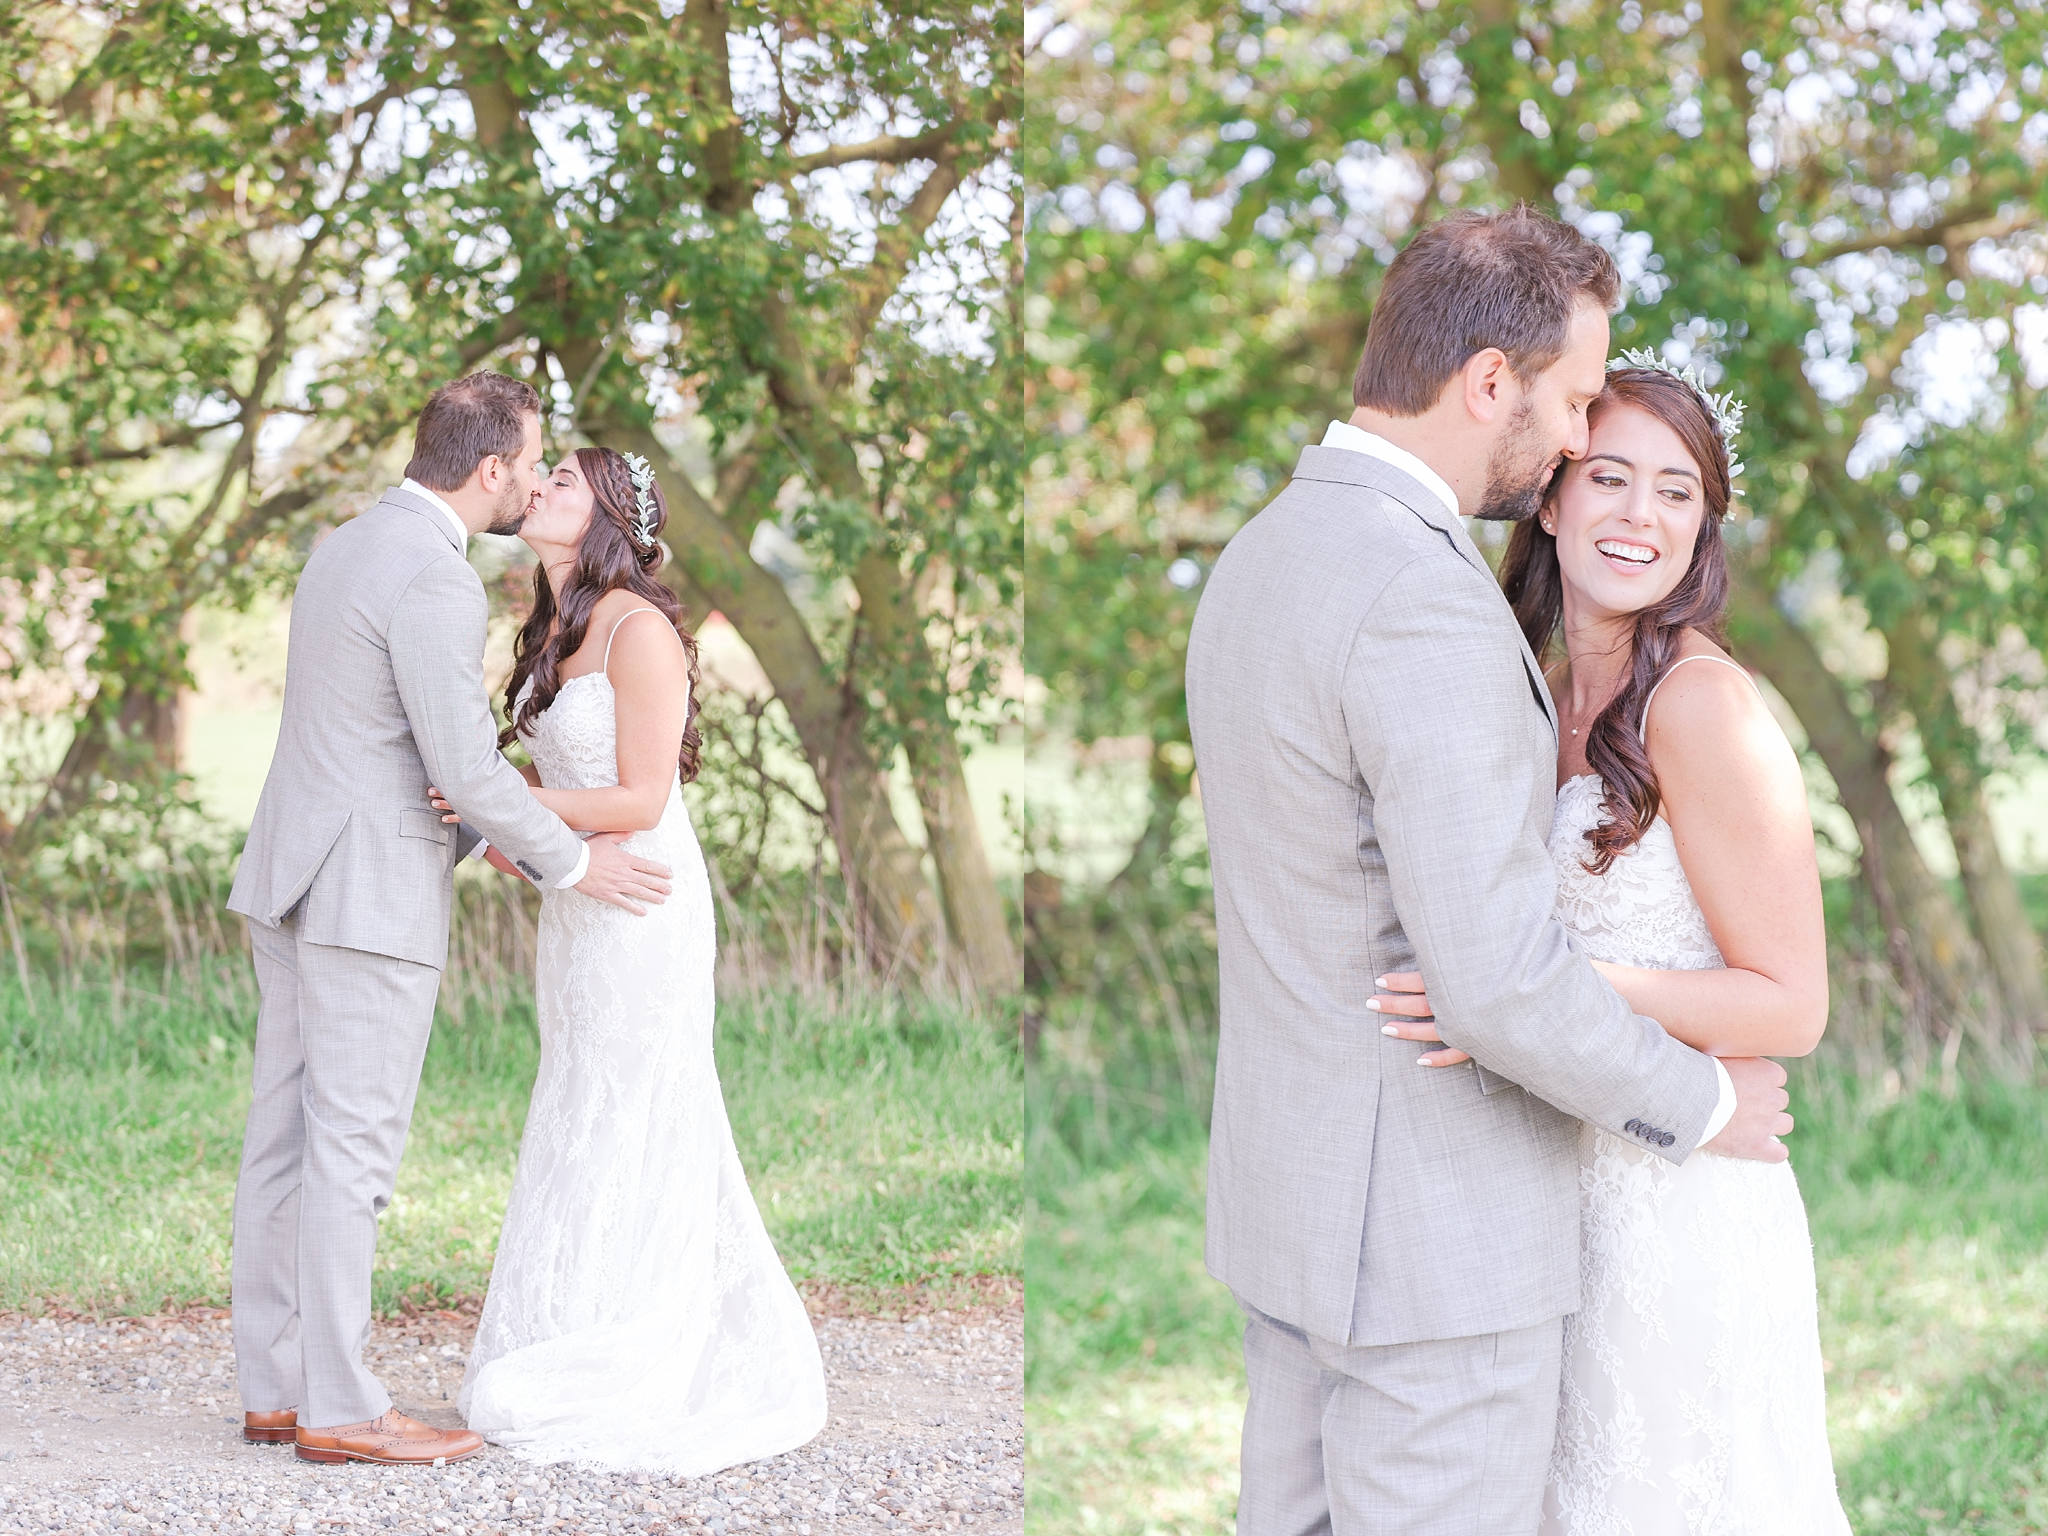 natural-rustic-wedding-photos-at-frutig-farms-the-valley-in-ann-arbor-michigan-by-courtney-carolyn-photography_0019.jpg